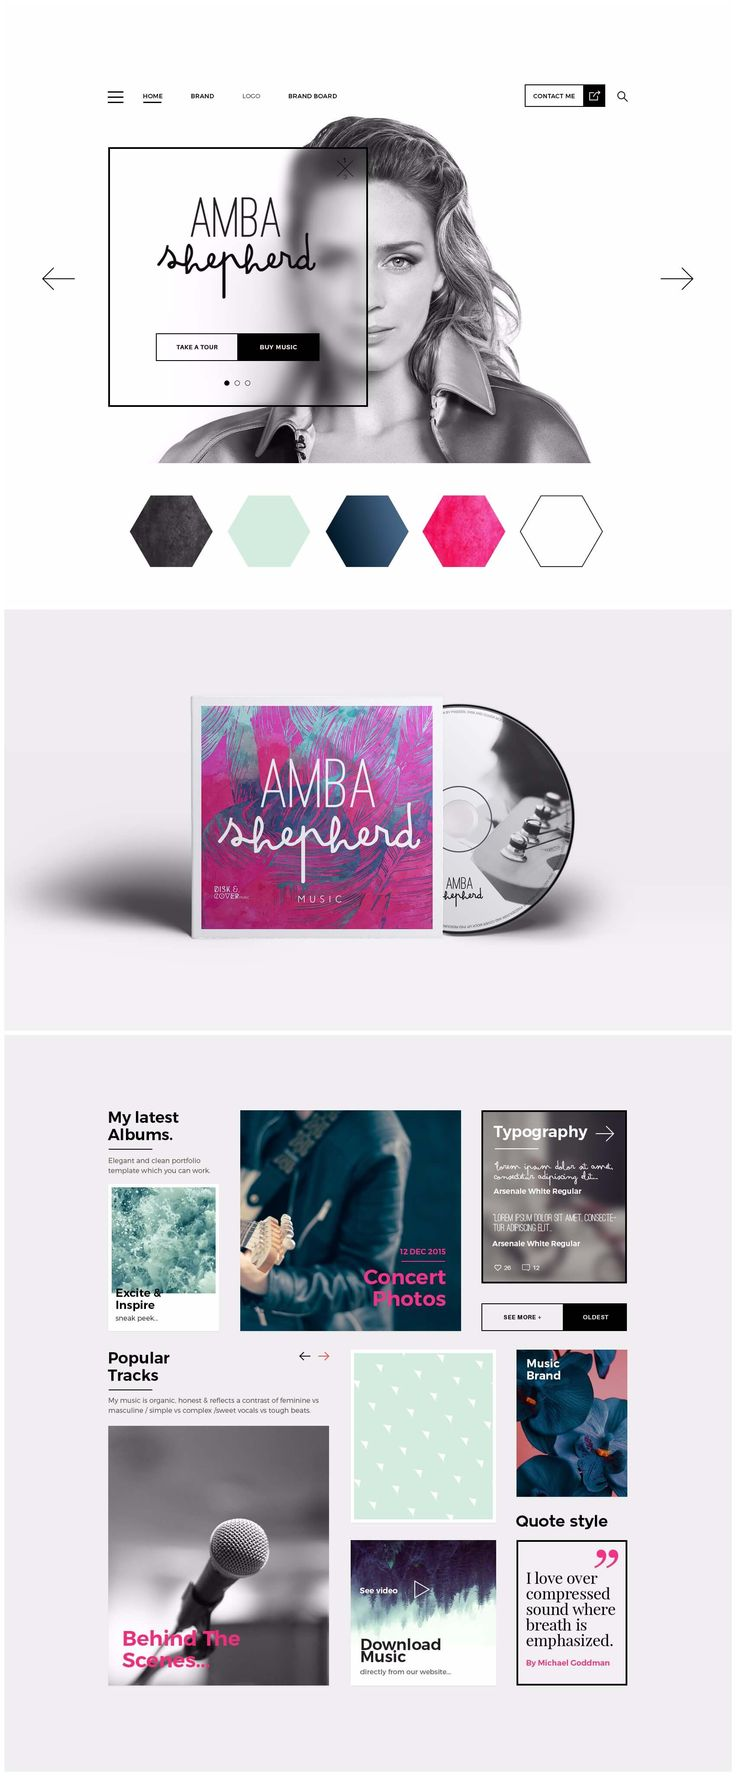 Amba Shepherd  Logo we designed for Amba Shepherd - who wanted her brand identity to reflect her unique kind of music. She also needed her logo to be simple to rea... http://83oranges.com/portfolio_page/amba-shepherd/